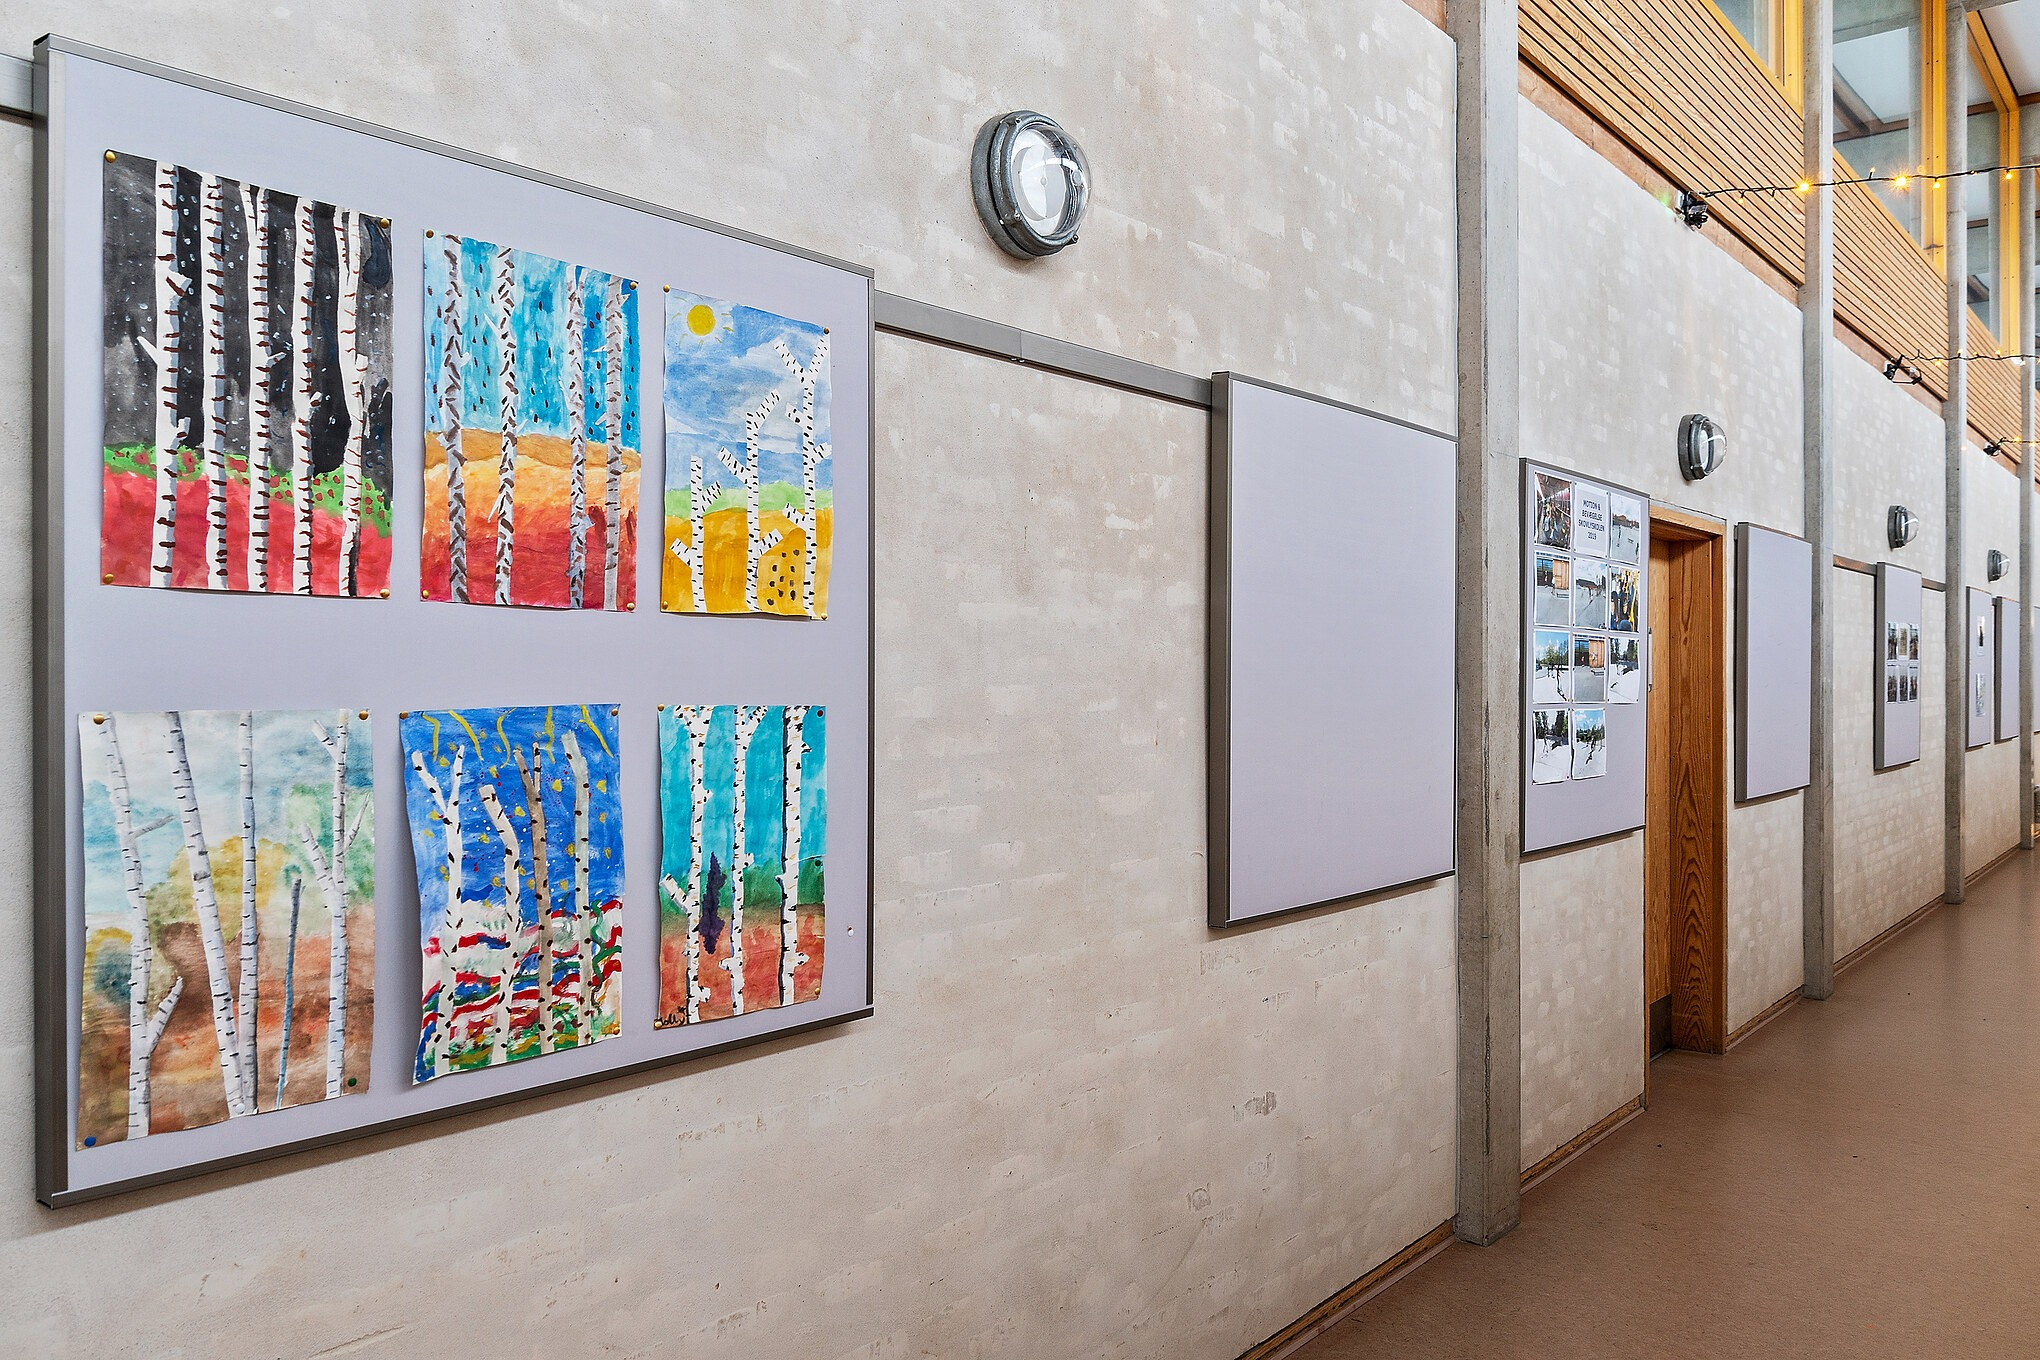 Hallway at Skovlyskolen with acoustic bulletin boards from Intelligent Space (INSP). Bulletin boards are framed in aluminium frames. On the boards, kids drawings are hanging.